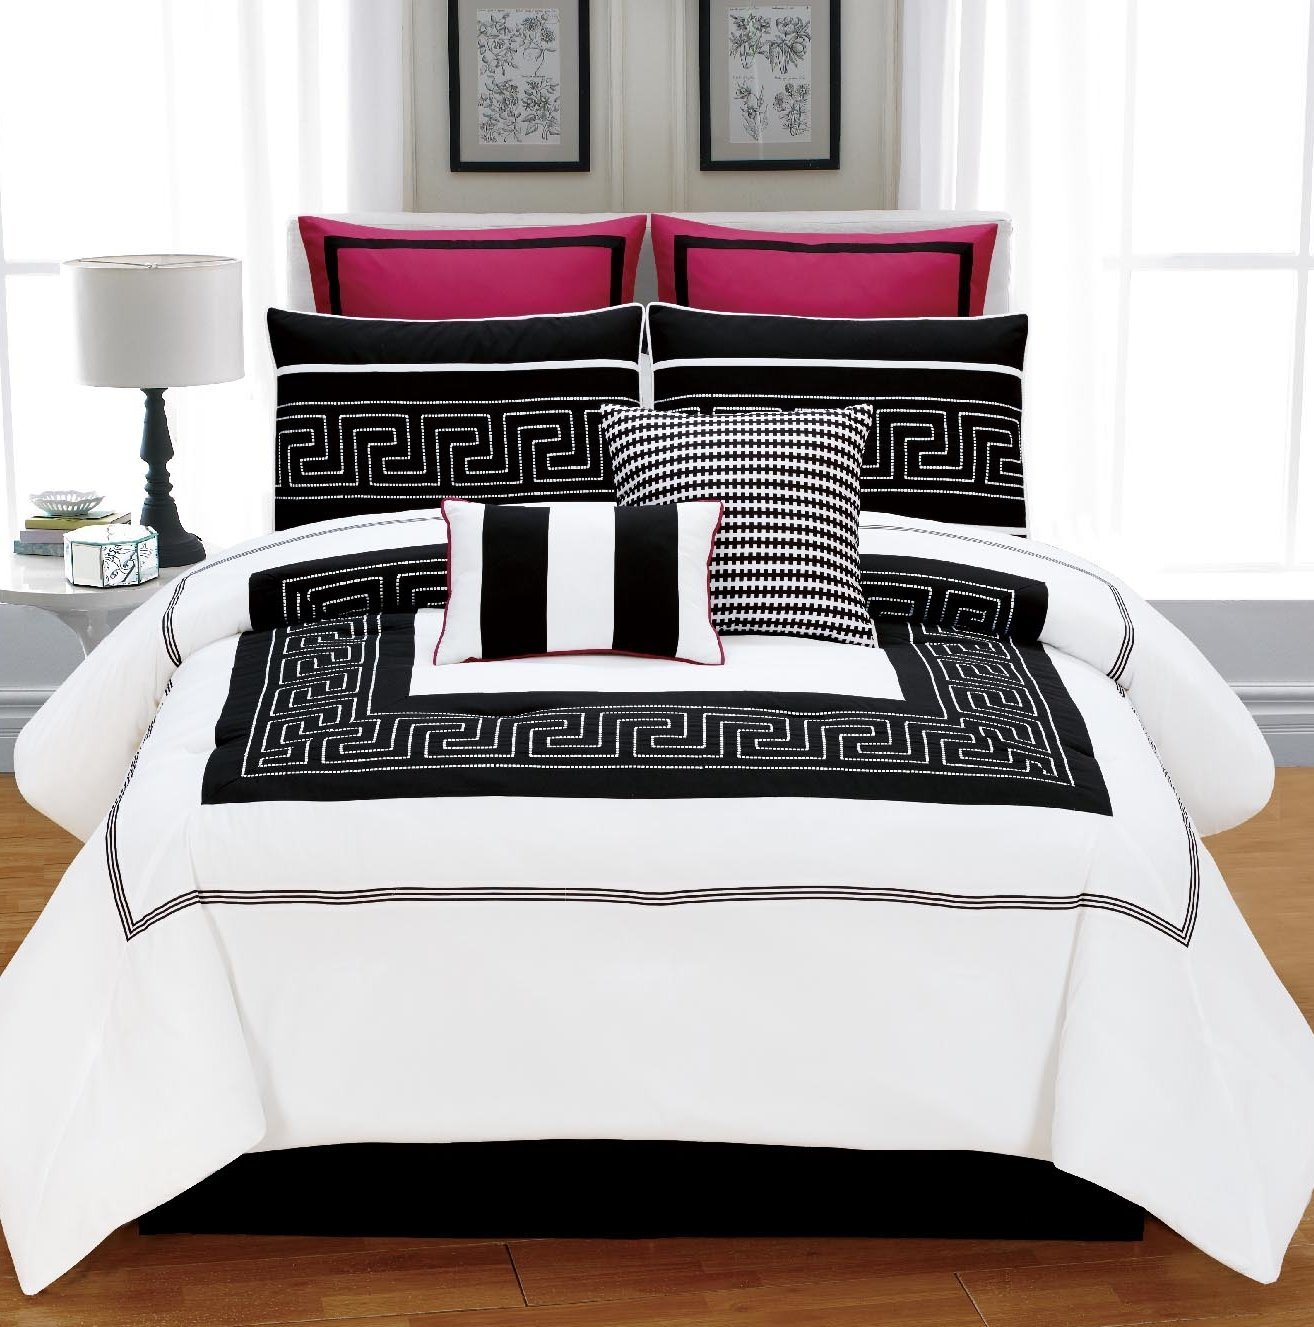 title | Red Black And White Bedding